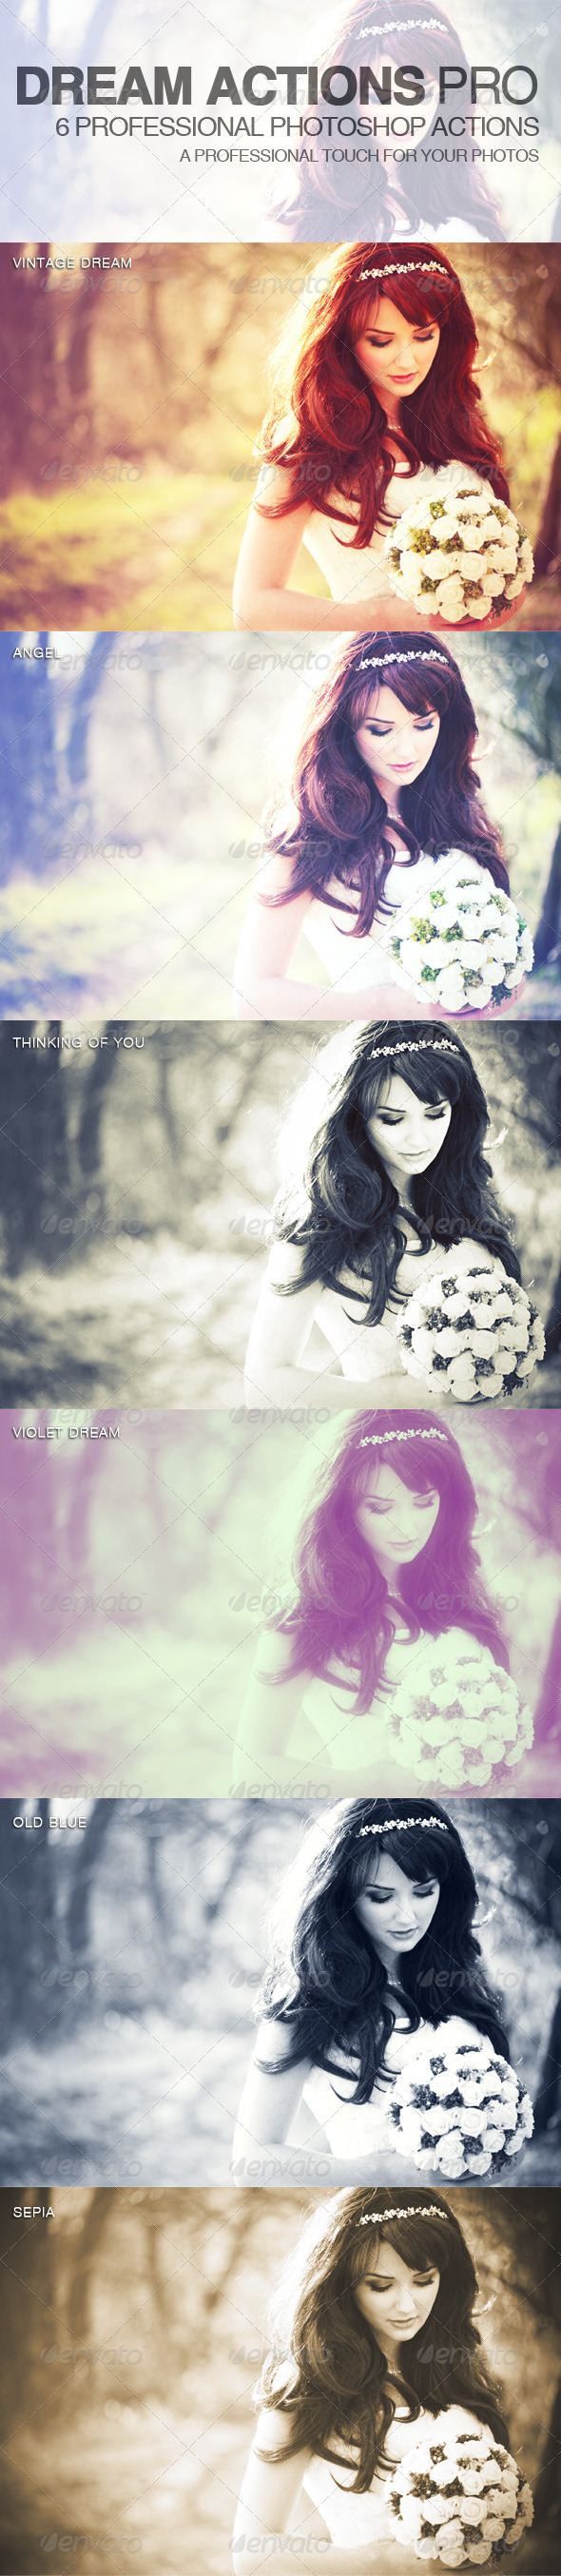 GraphicRiver Dream Actions PRO Photo Effects 2560707